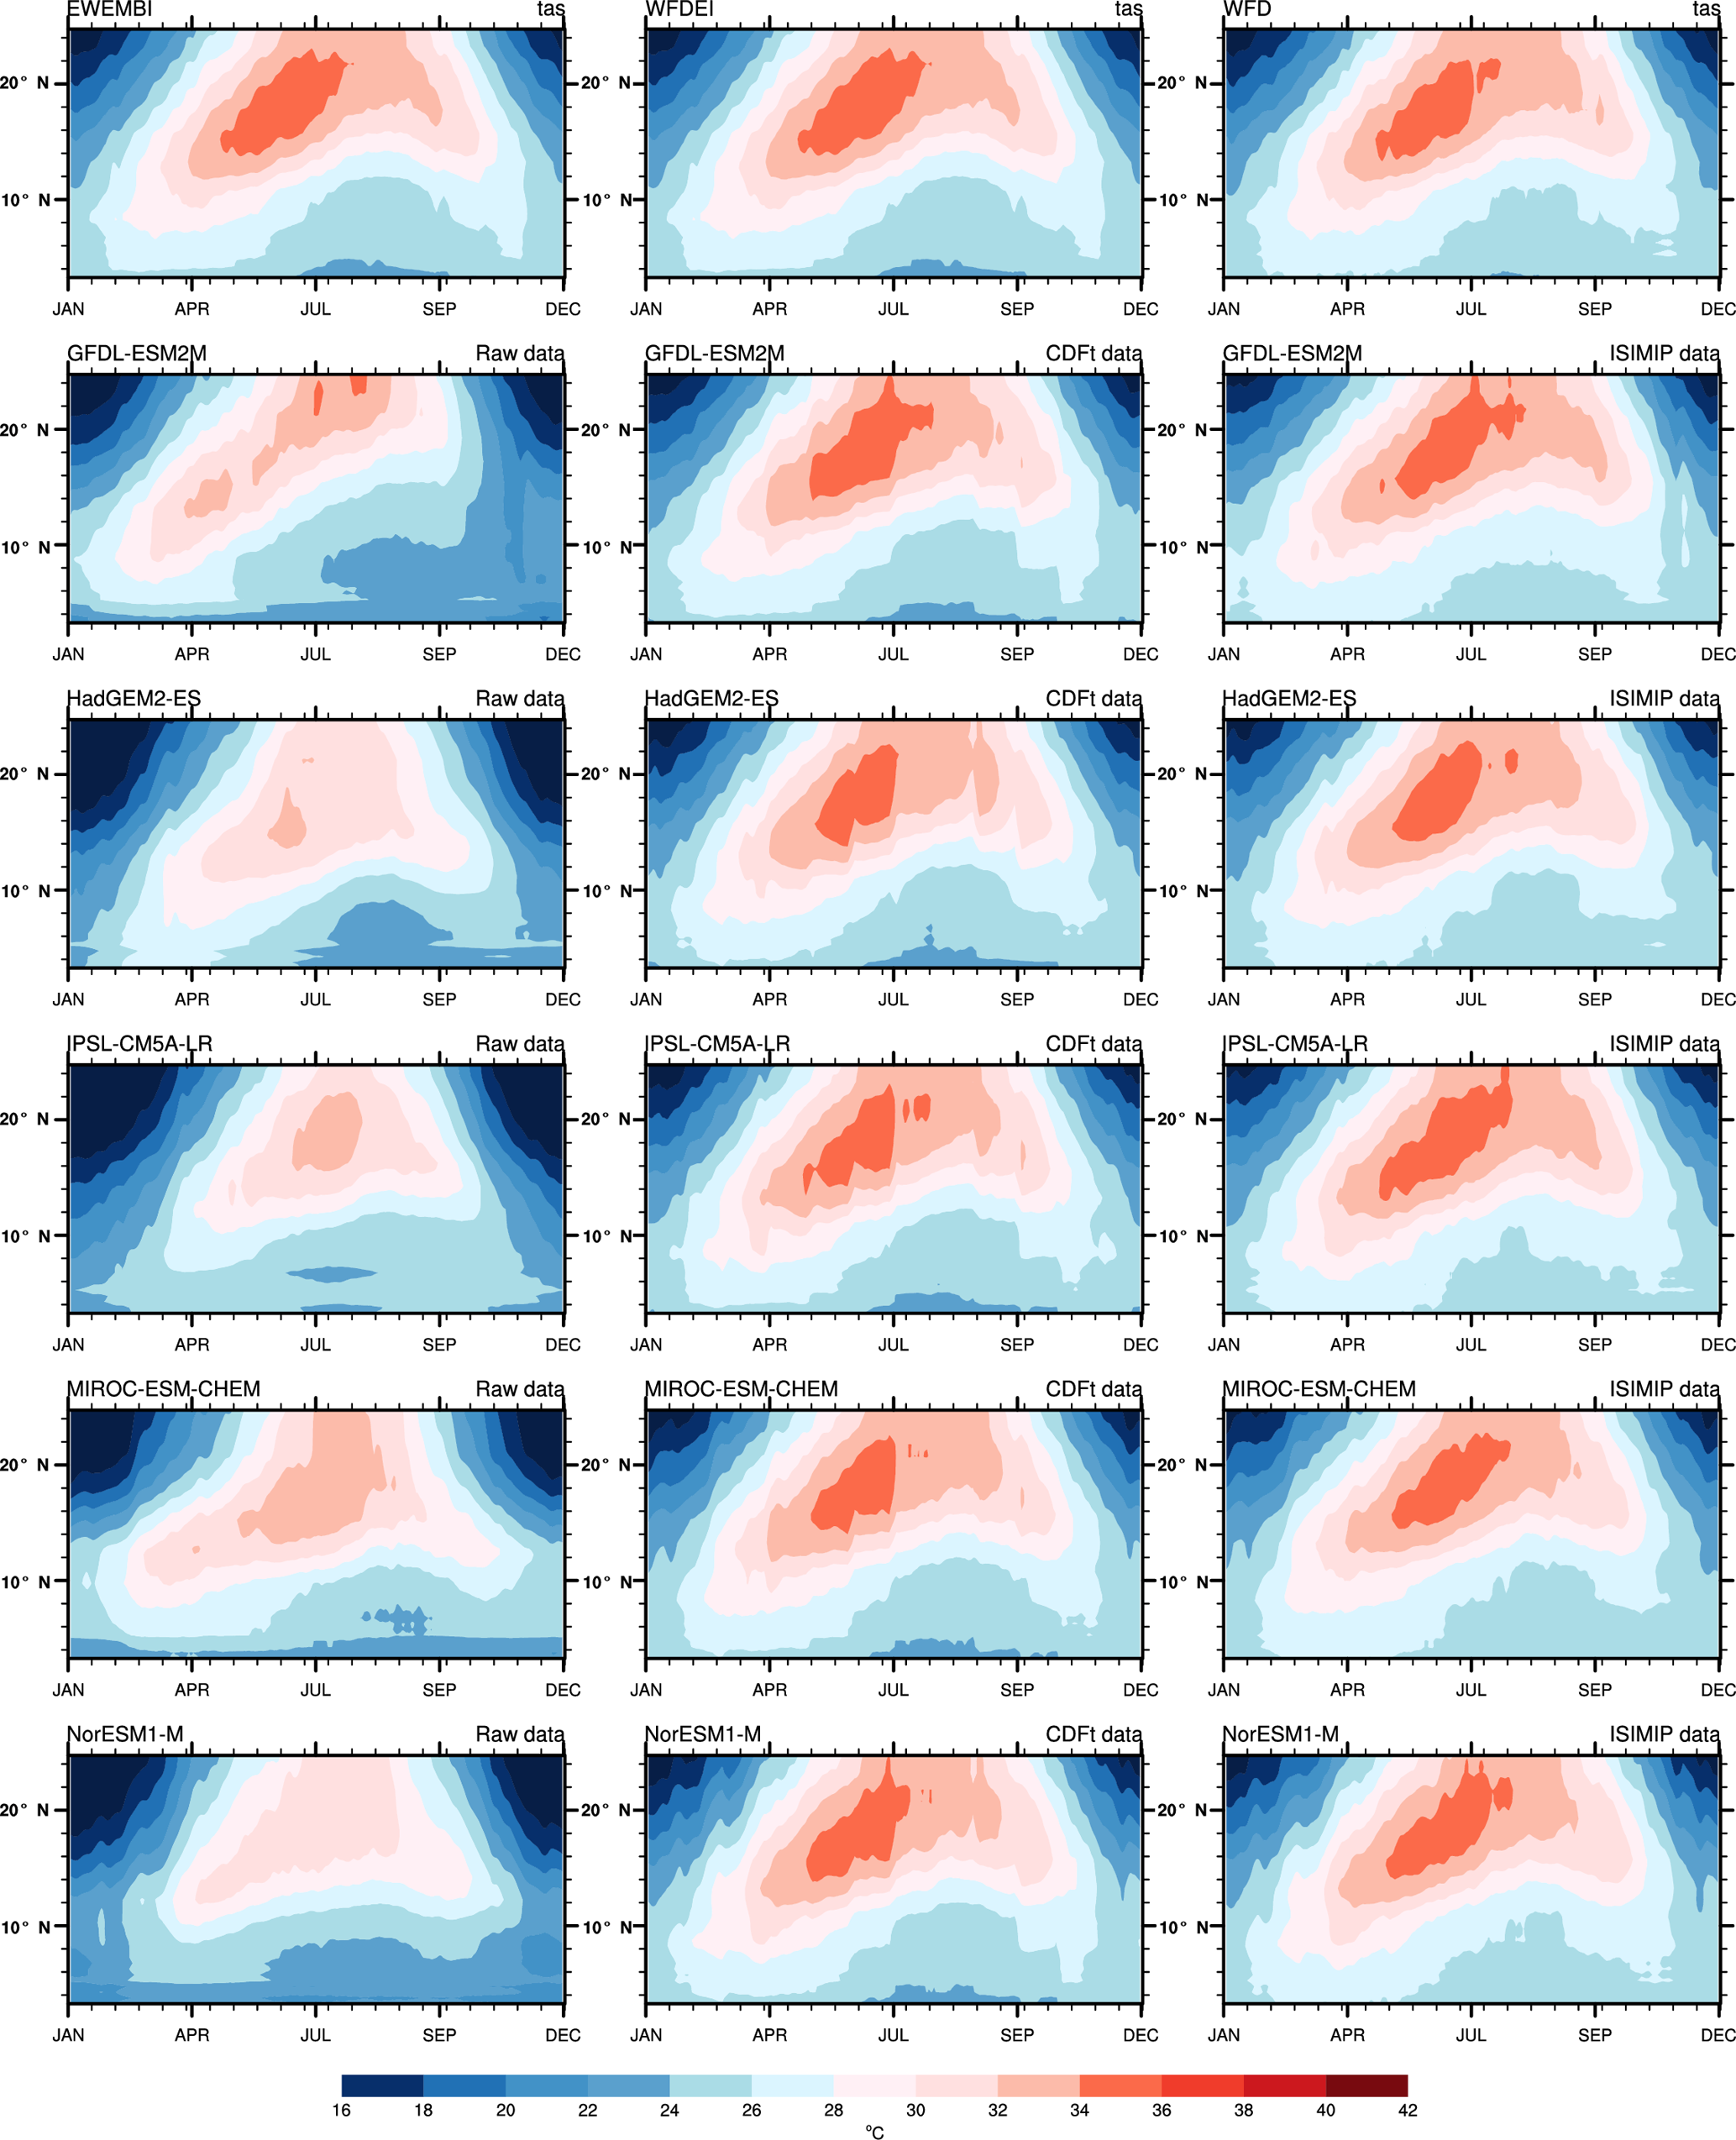 ESD - A bias-corrected CMIP5 dataset for Africa using the